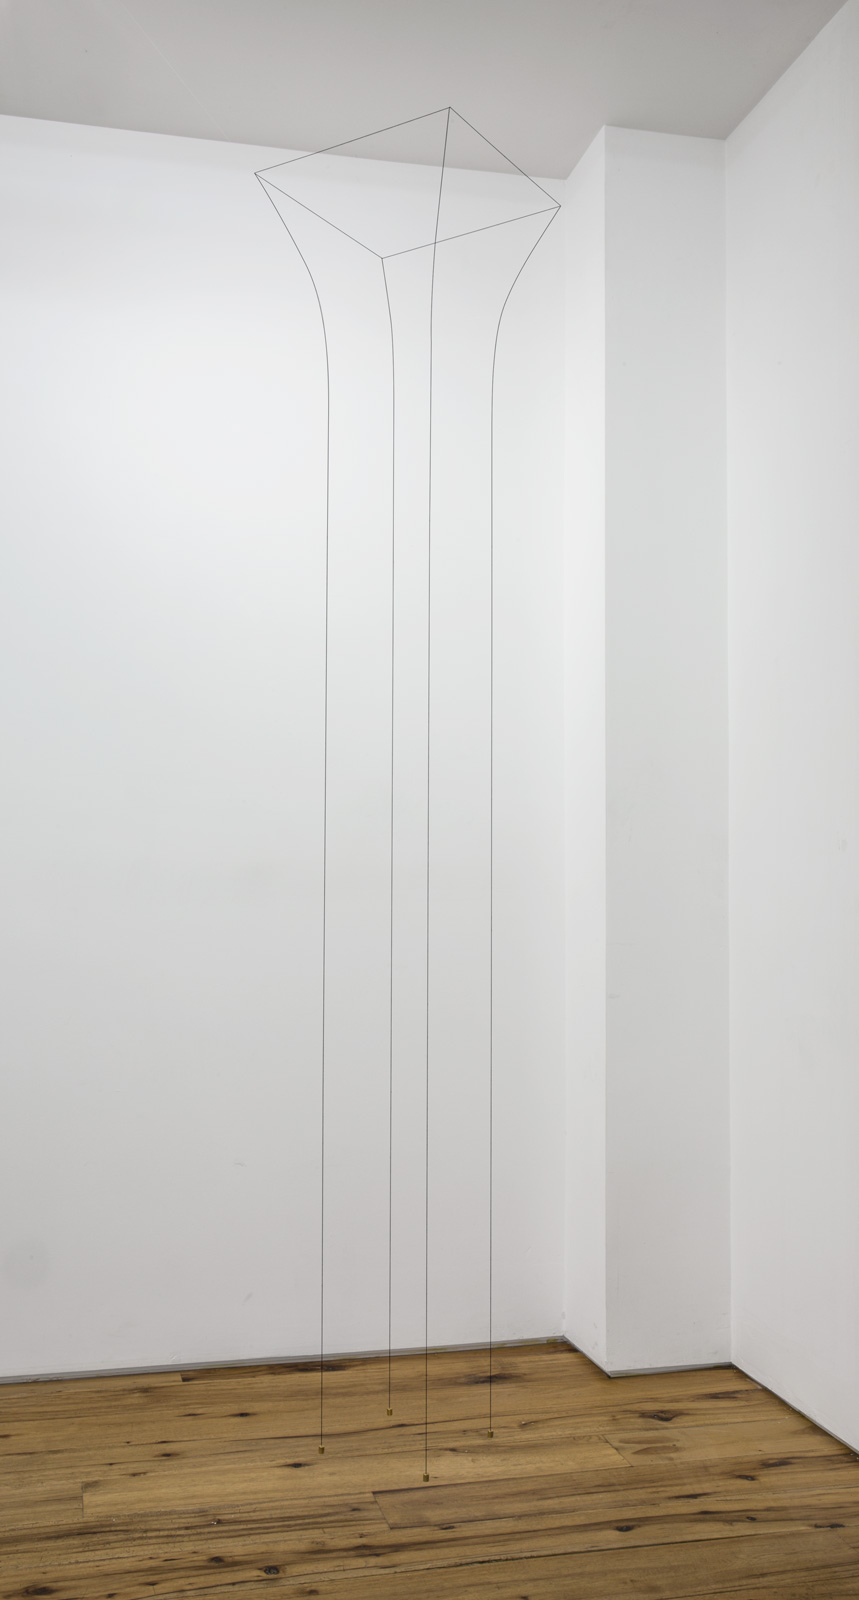 Jong Oh 2016 String, fishing wire, metal rod, weight, paint 97 x 17 x 17 inches 2016 Marc Straus Gallery